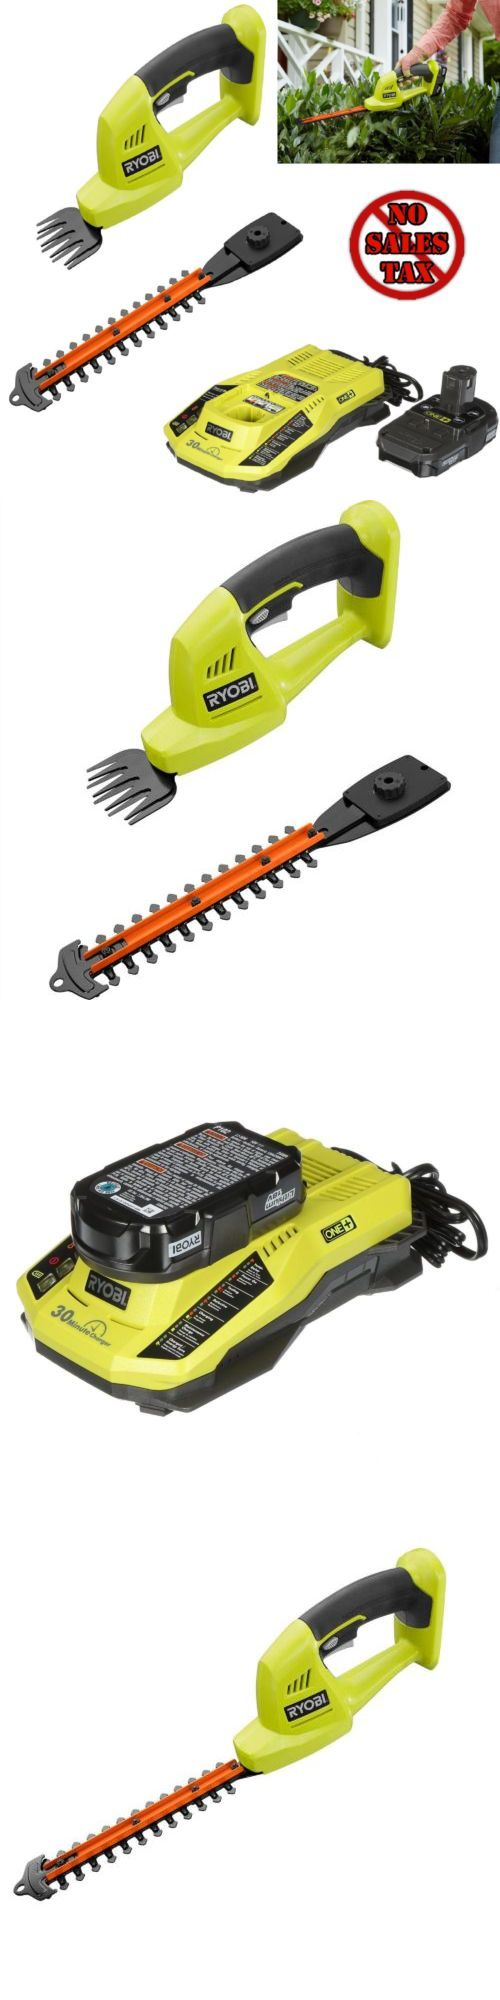 Hedge and Grass Shears 139872: Grass Shears Hedge Trimmer Cordless Ryobi Power Tools Battery Charger 18V 1D -> BUY IT NOW ONLY: $136.93 on eBay!